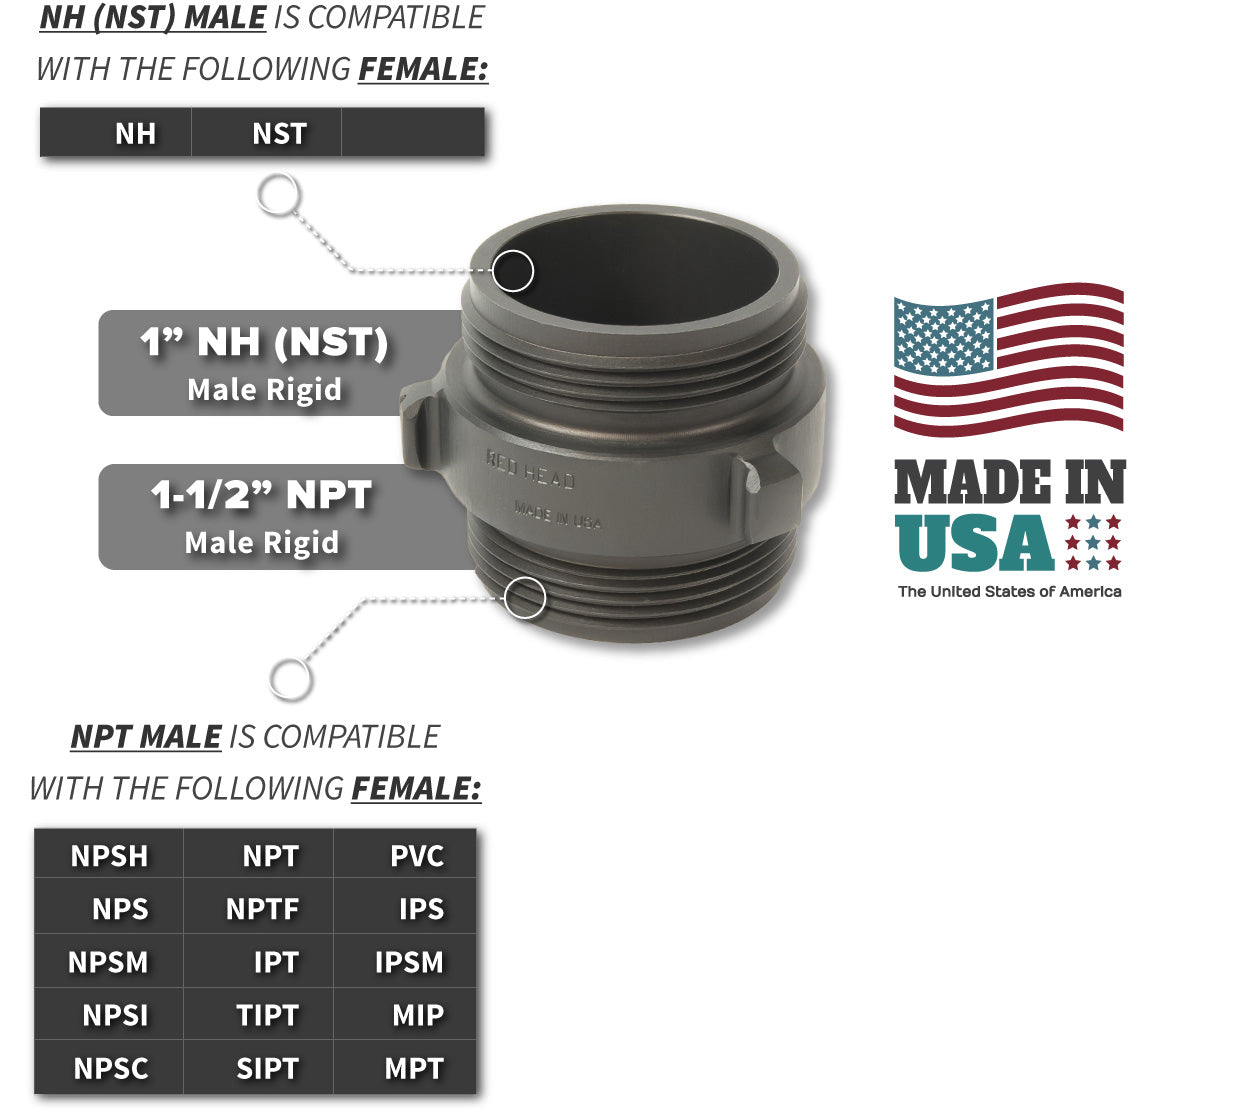 1 Inch NH-NST Male x 1.5 Inch NPT Male Compatibility Thread Chart